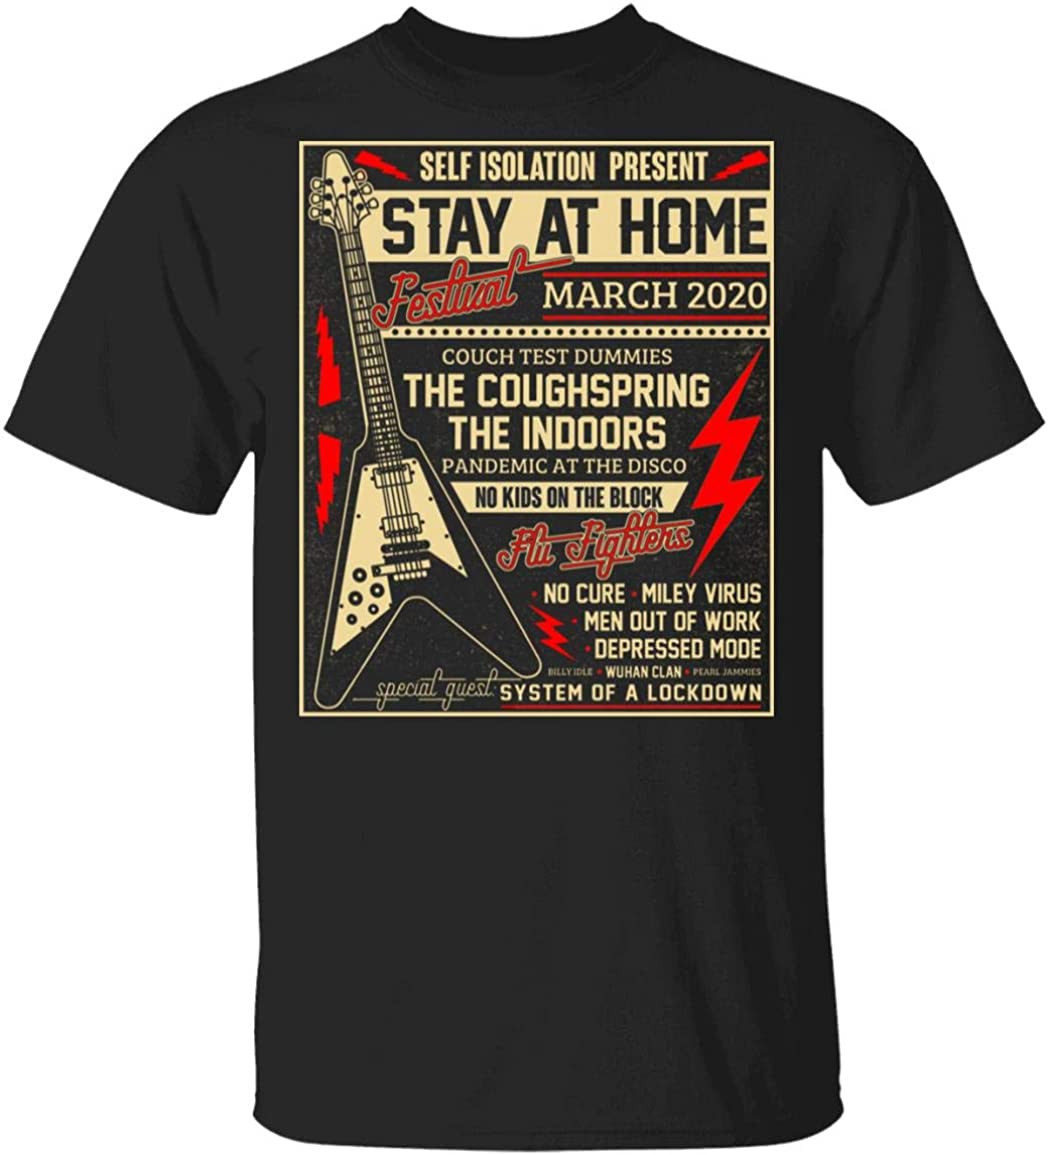 self Isolation Present Stay at Home Festival March 2020 t-Shirt Funny Rock Music 2020 Shirt